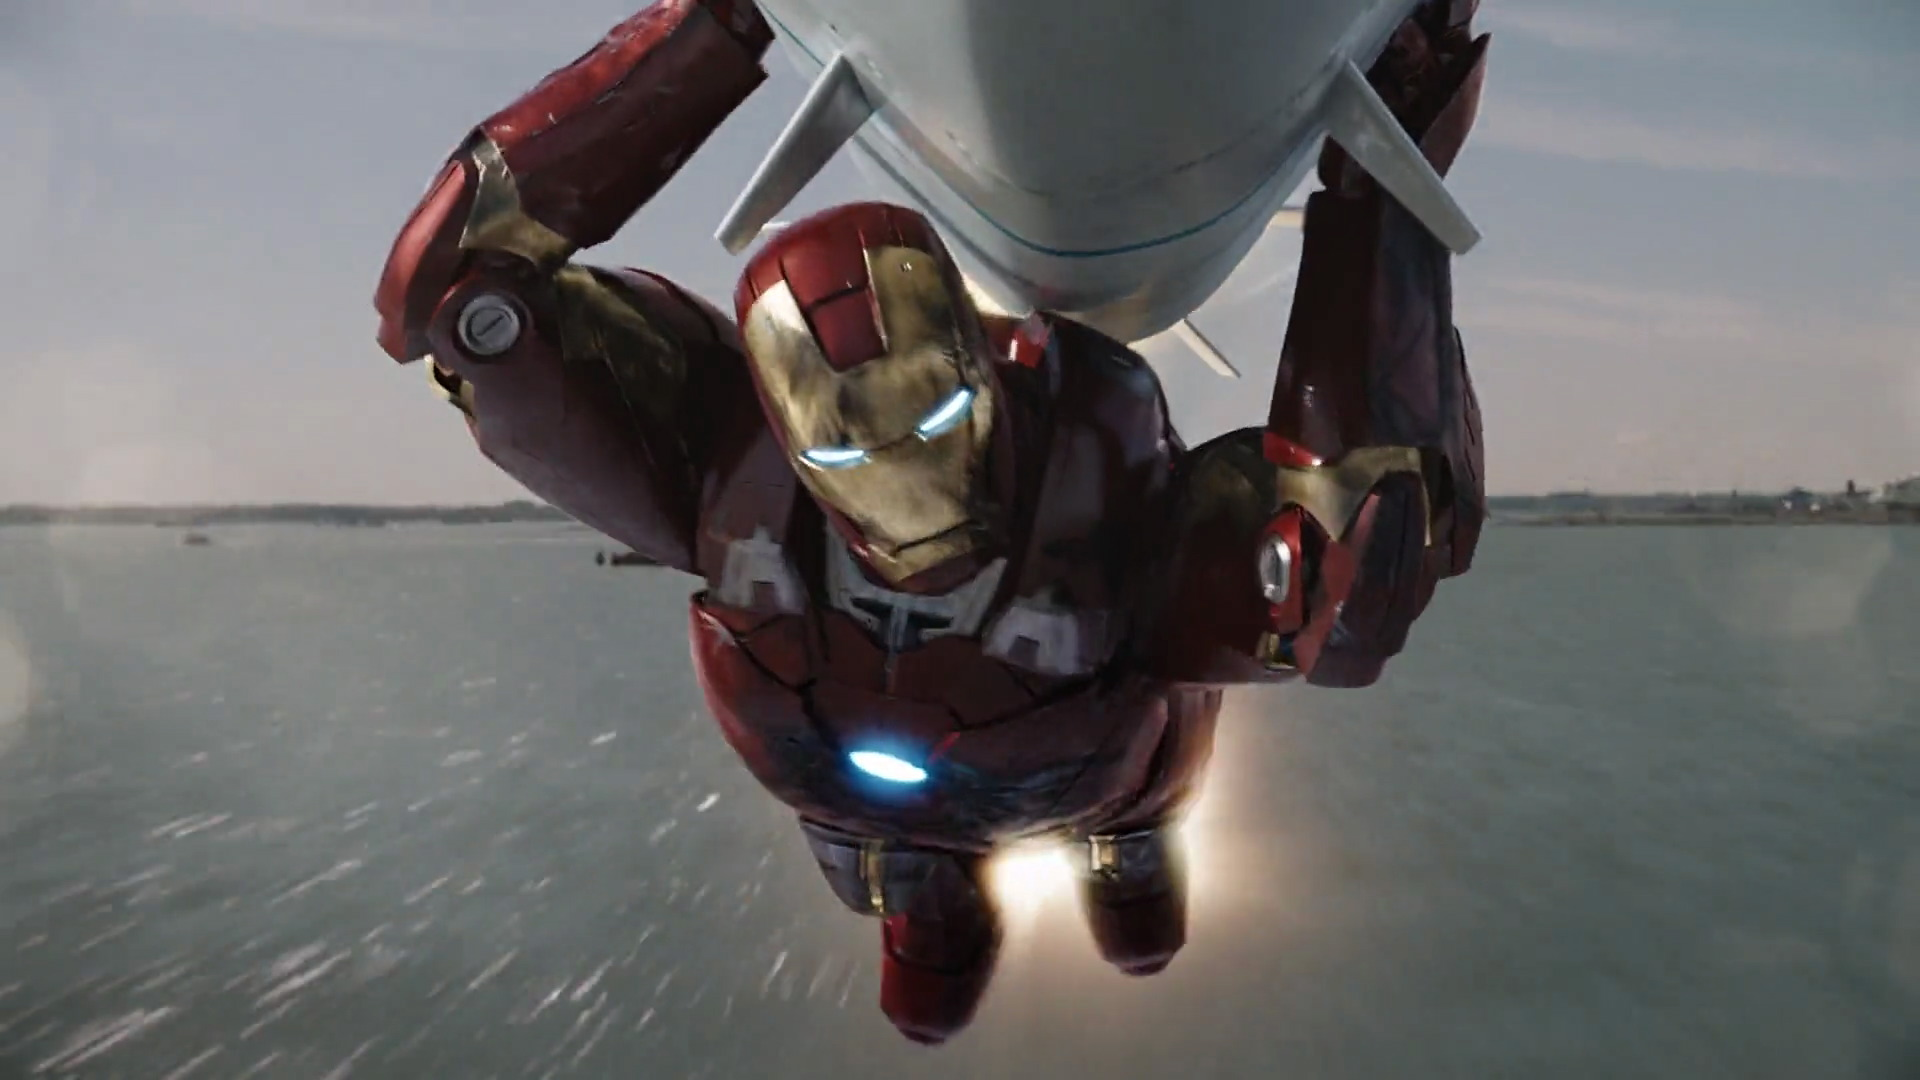 http://www.caps.media/201/2-avengers/full/avengers-movie-screencaps.com-14908.jpg